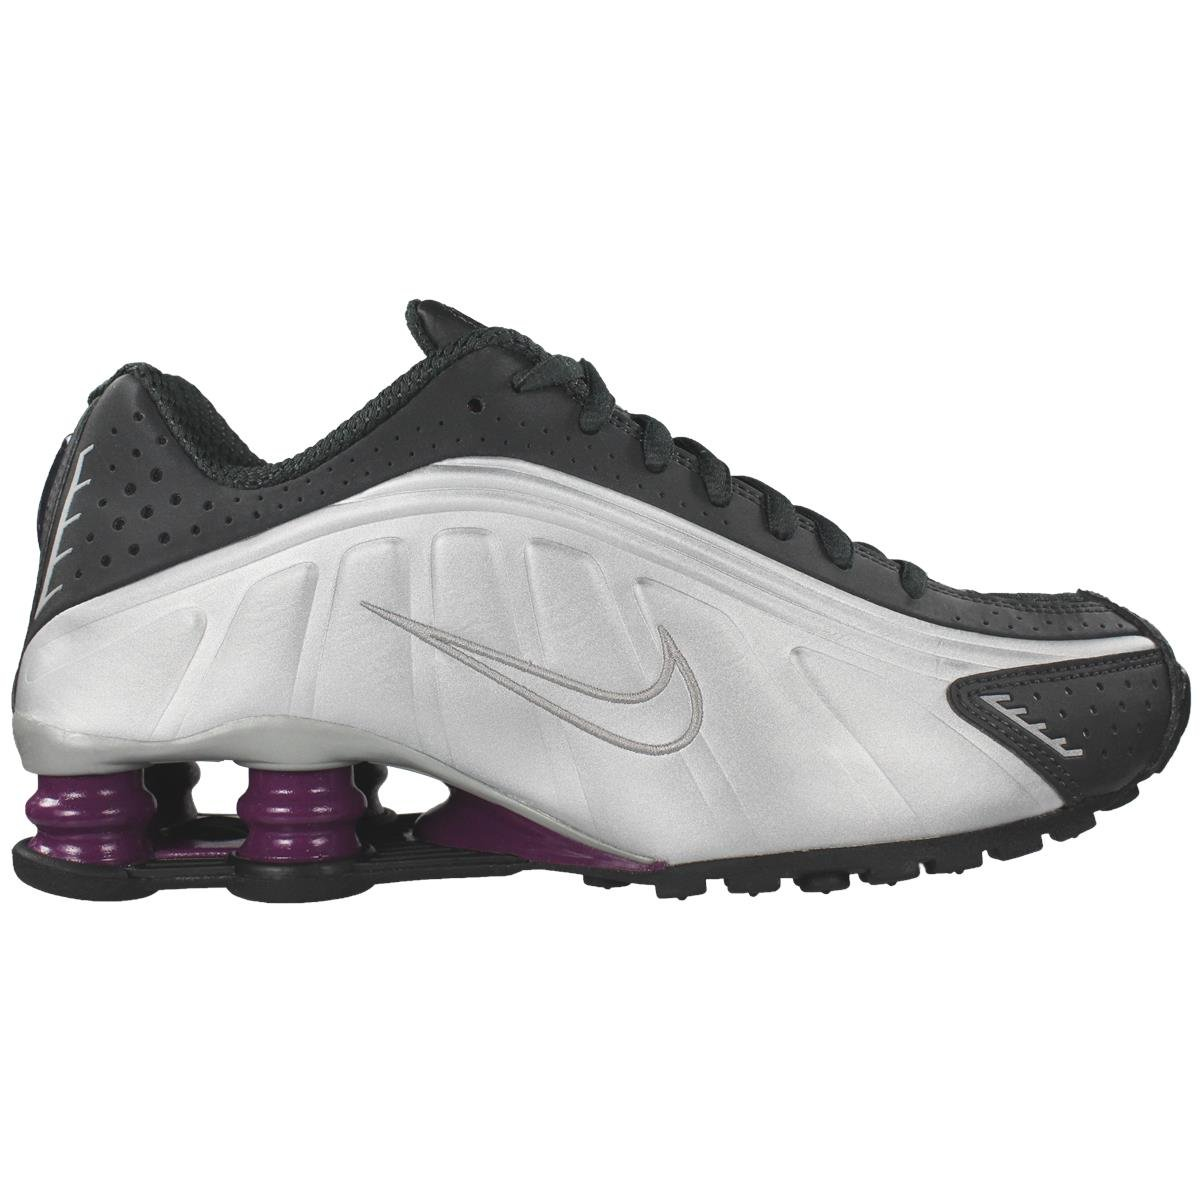 cheap for discount 50ffa 14448 TÊNIS NIKE SHOX R4 FEMININO